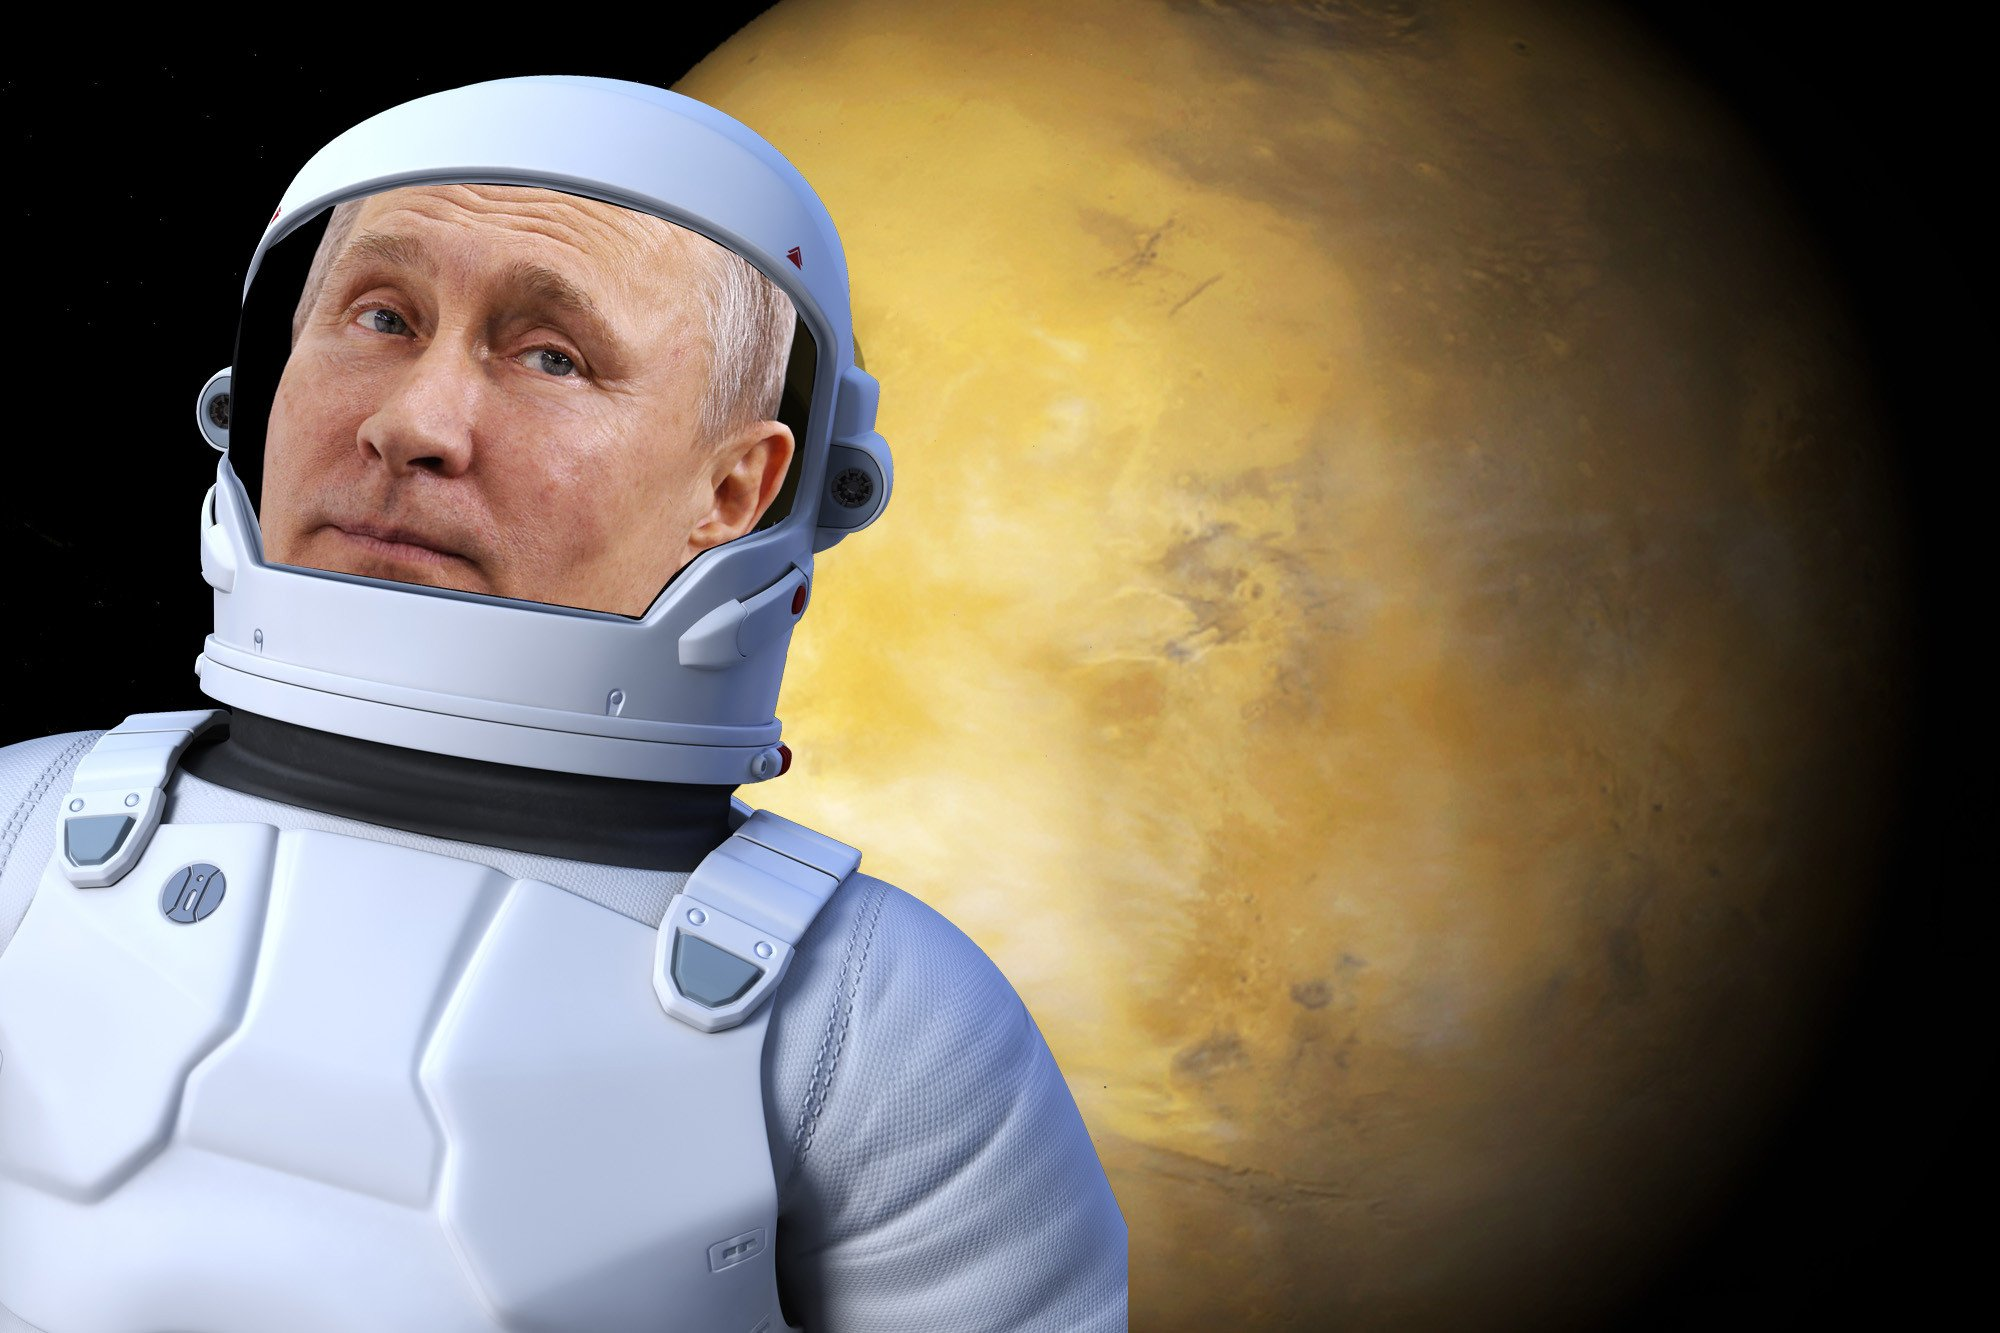 Putin wants to beat the US to Mars